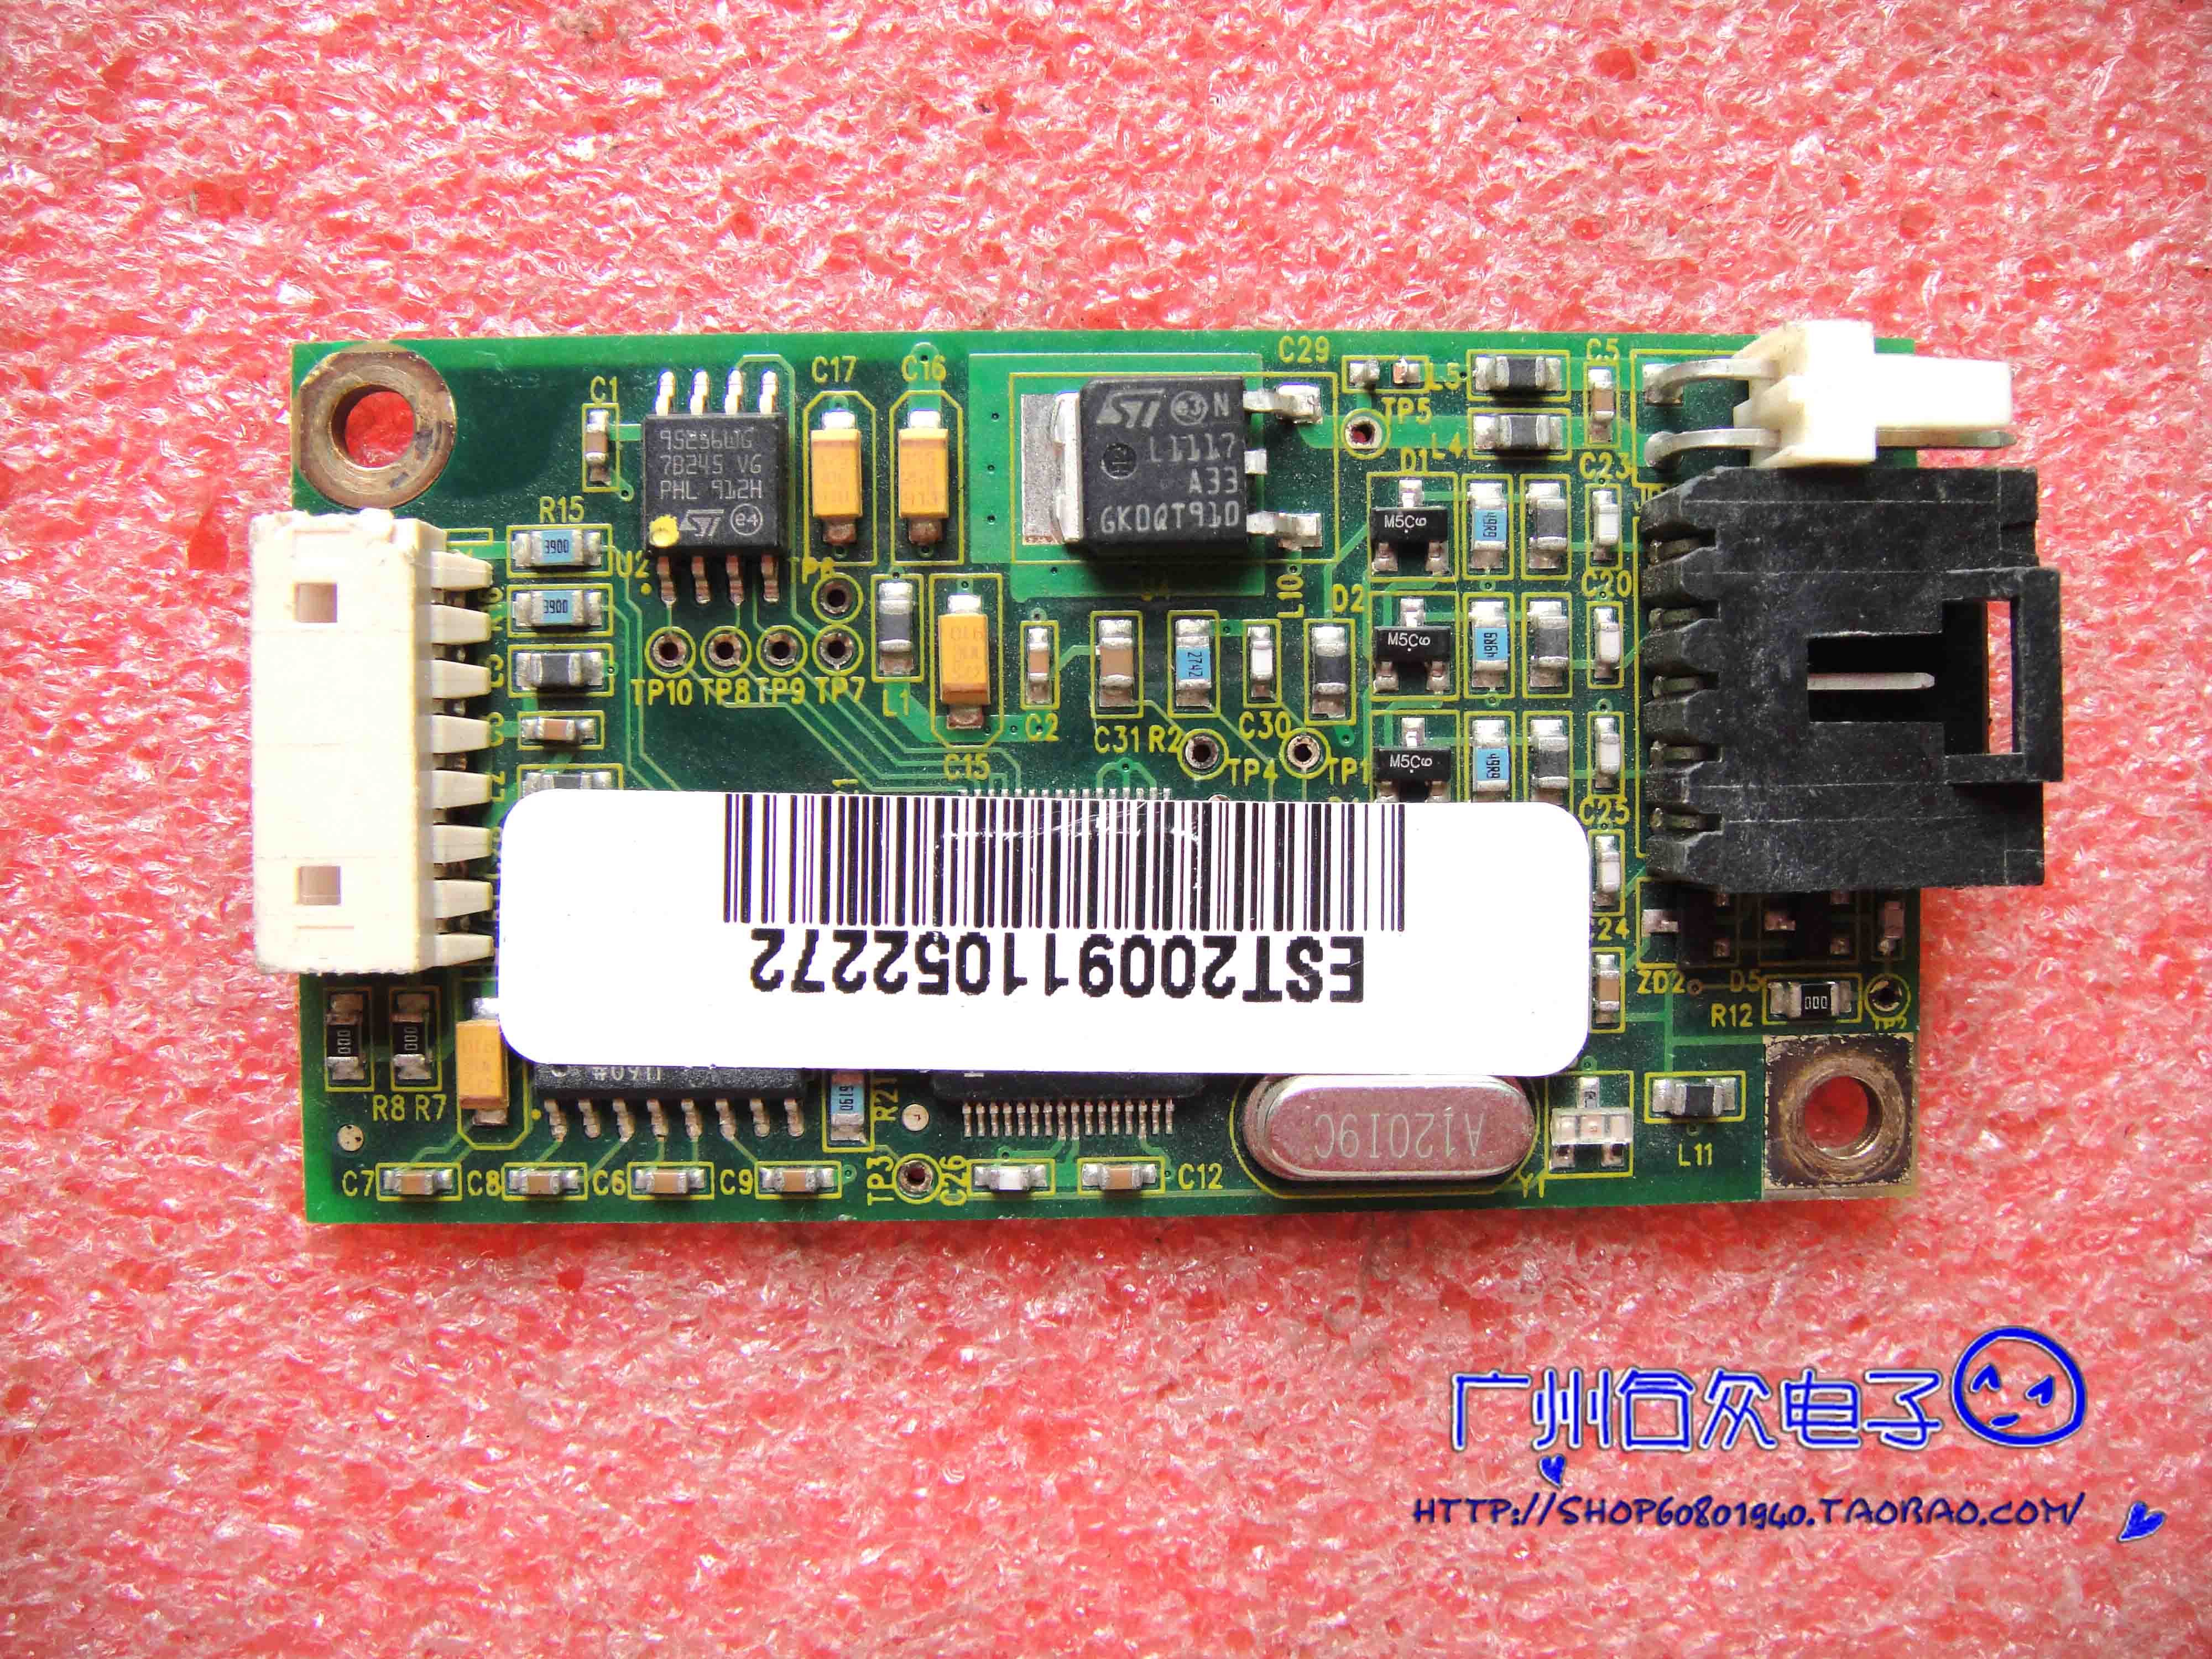 The Touch Panel 3M 5405210 Rev3.0 1.6 Control Board EXII-7020SC 405-10001-0